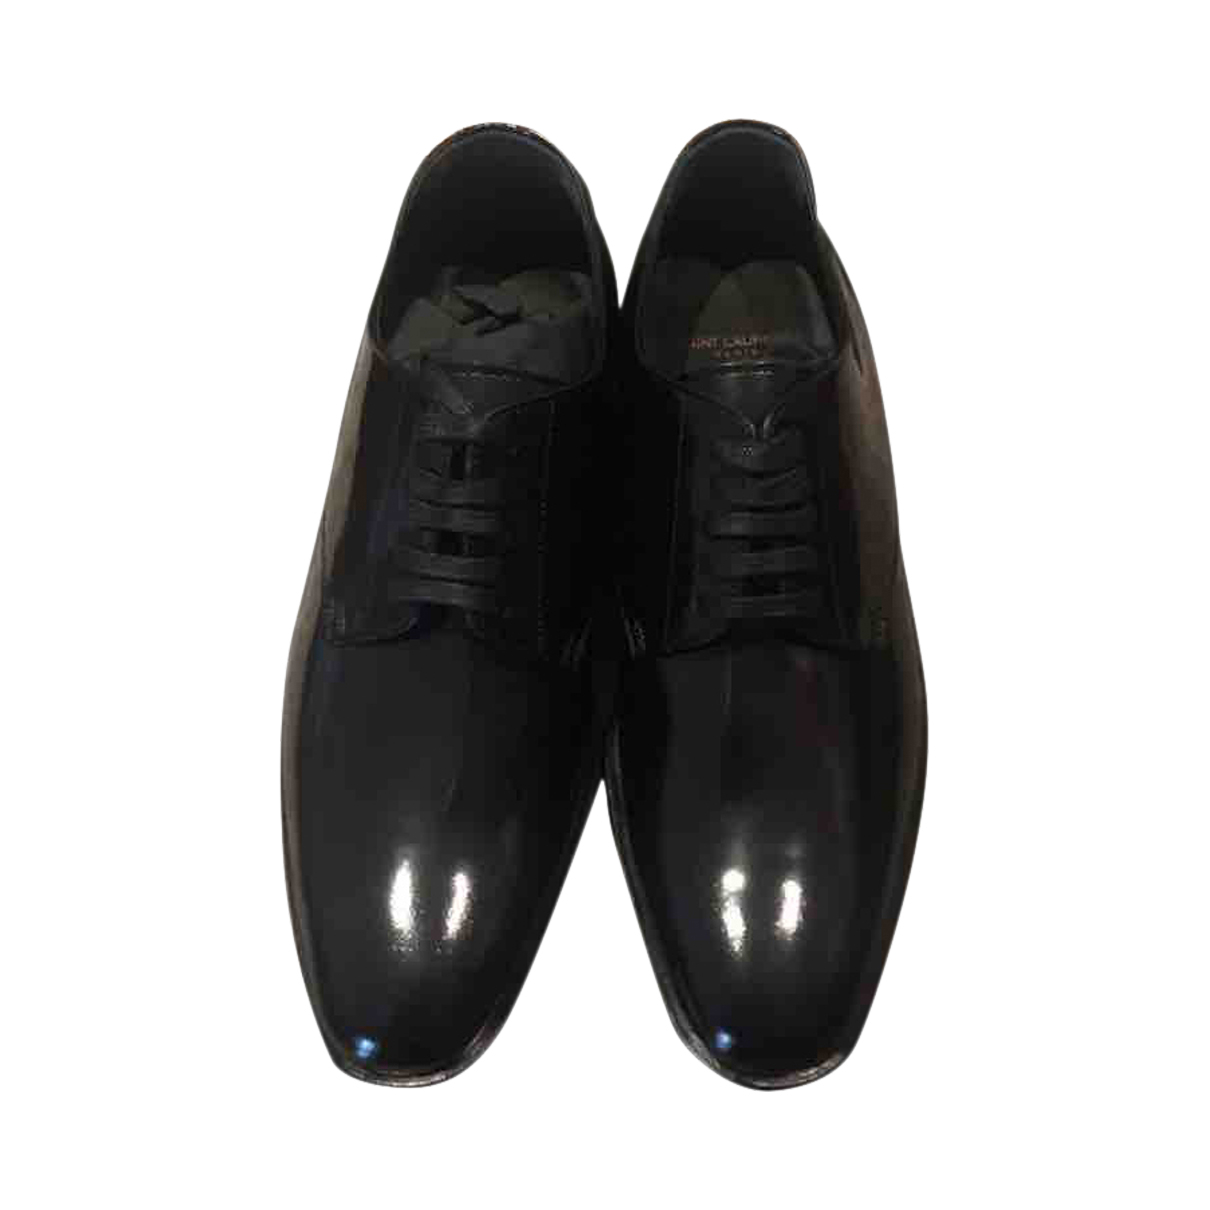 Saint Laurent \N Black Leather Lace ups for Women 37.5 EU